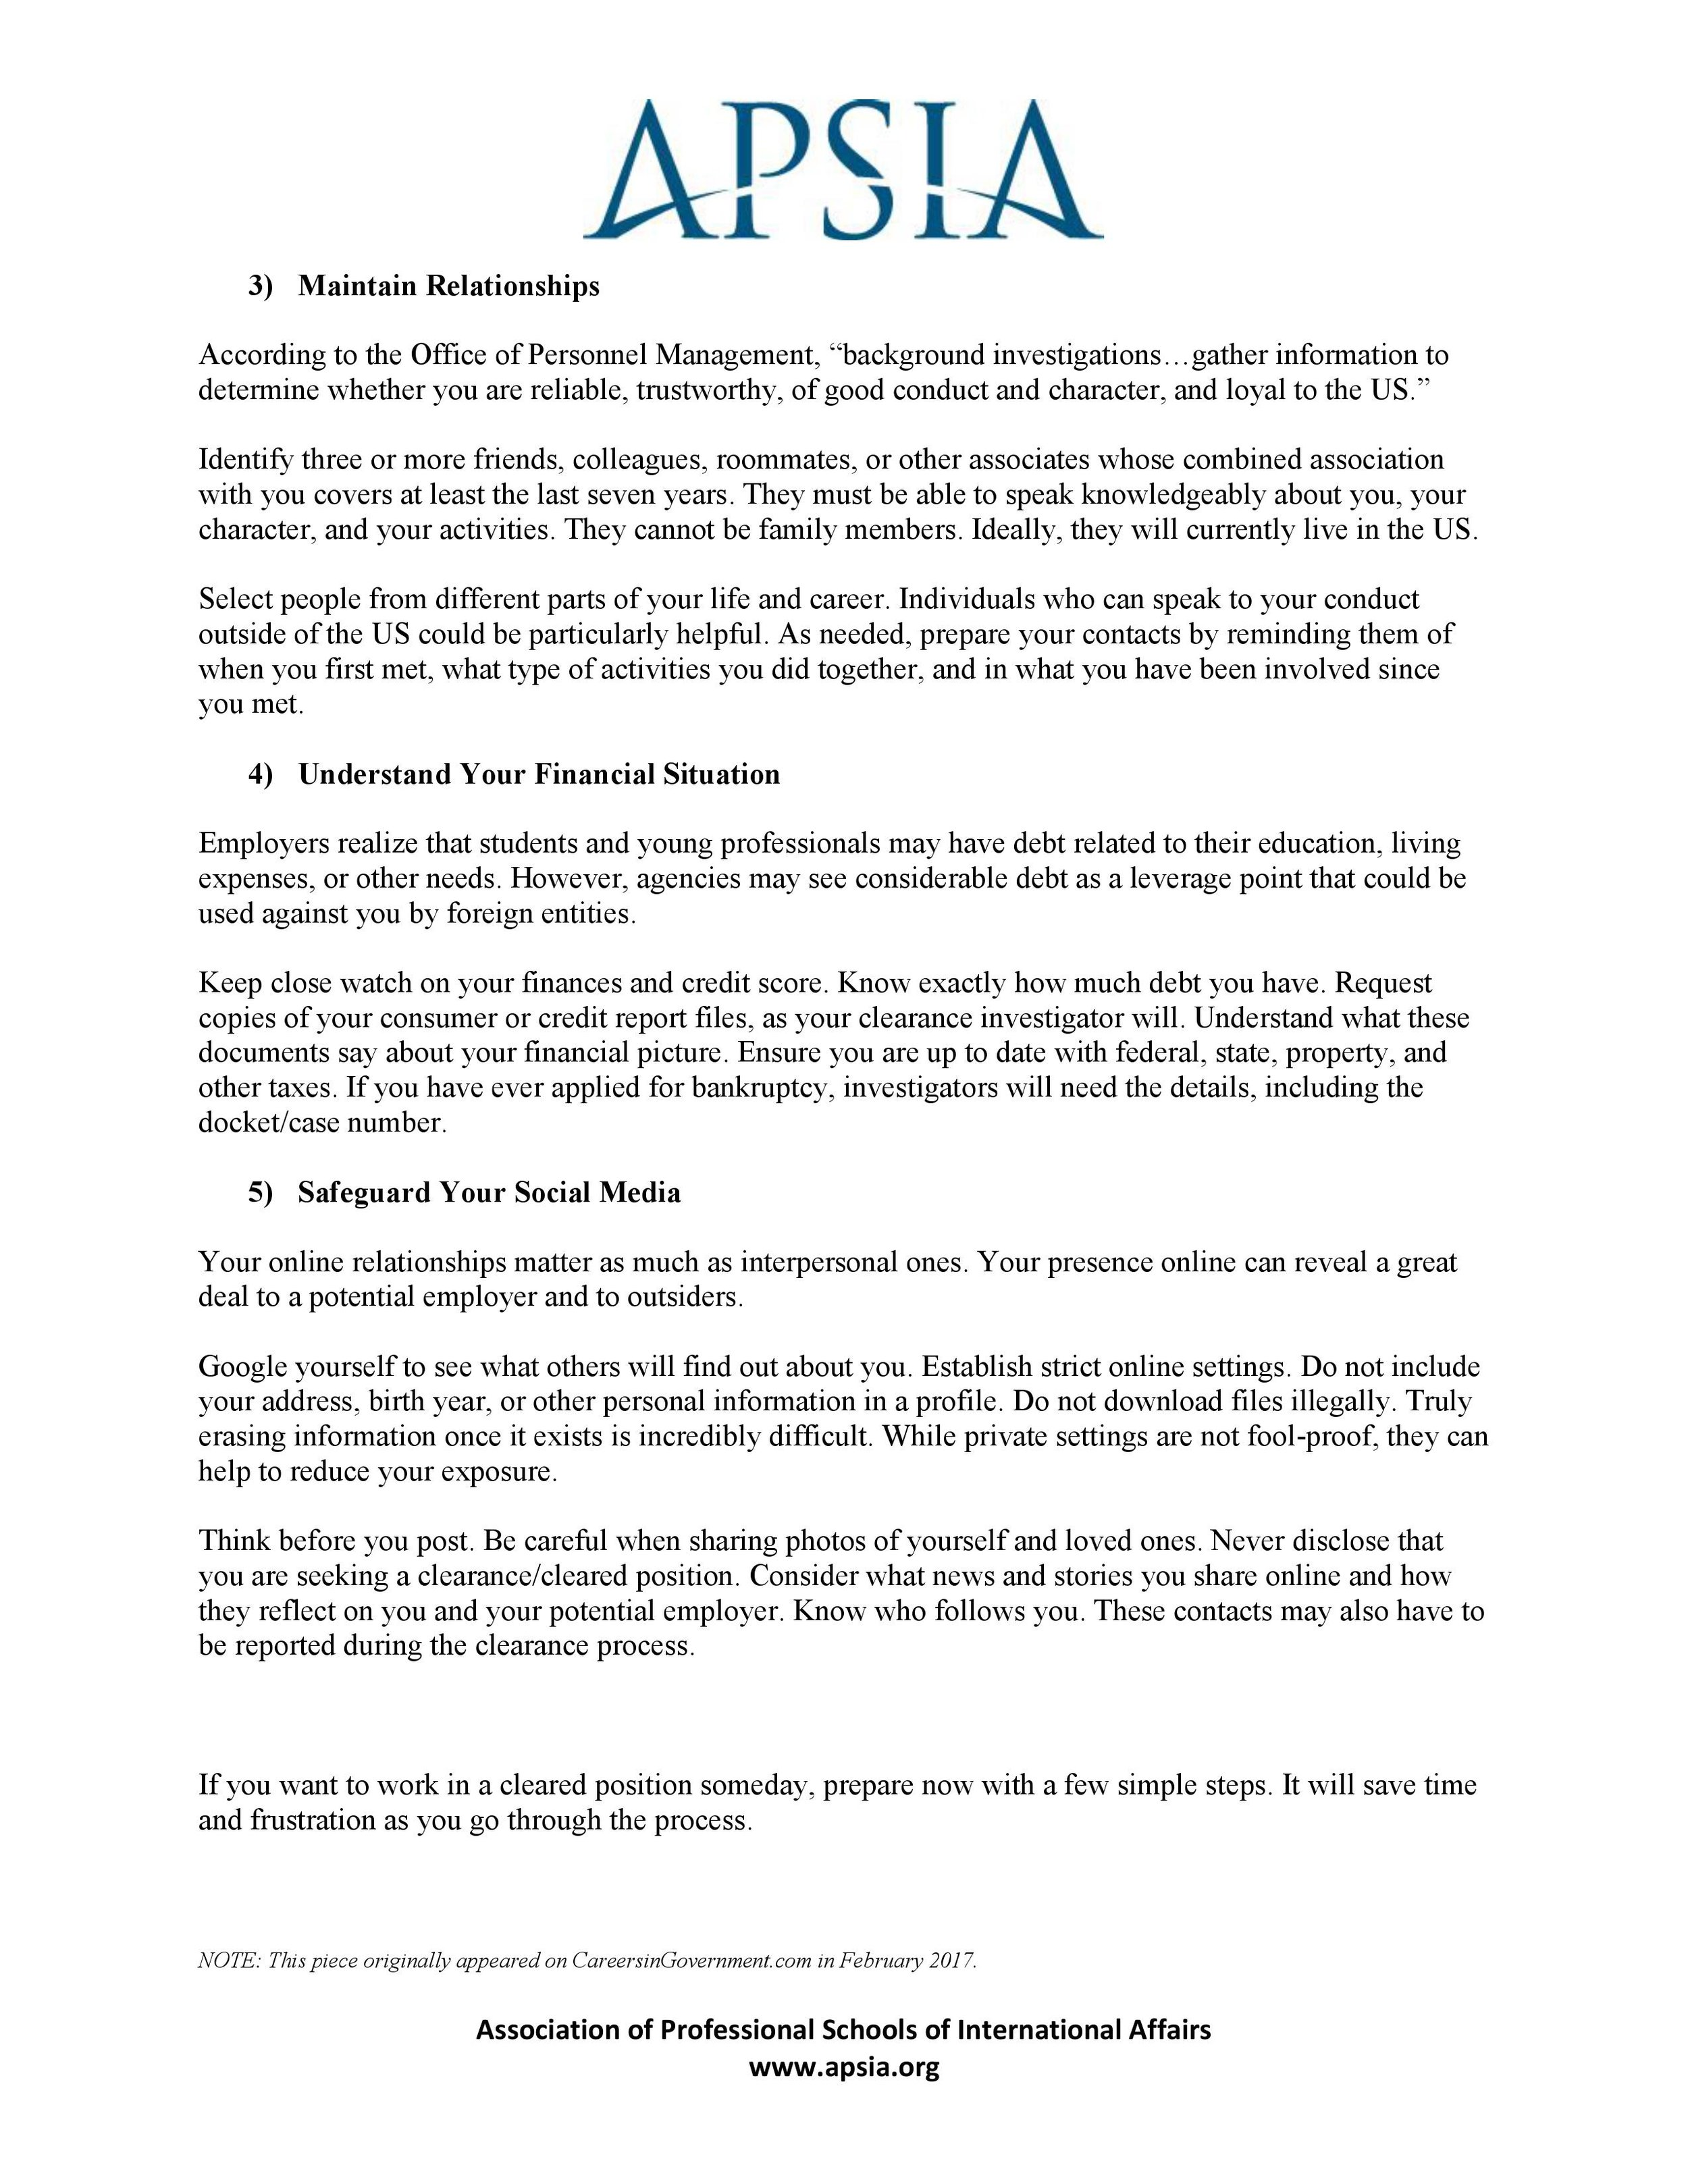 APSIA Post_5 Ways to Prepare for a Security Clearance_0002.jpg